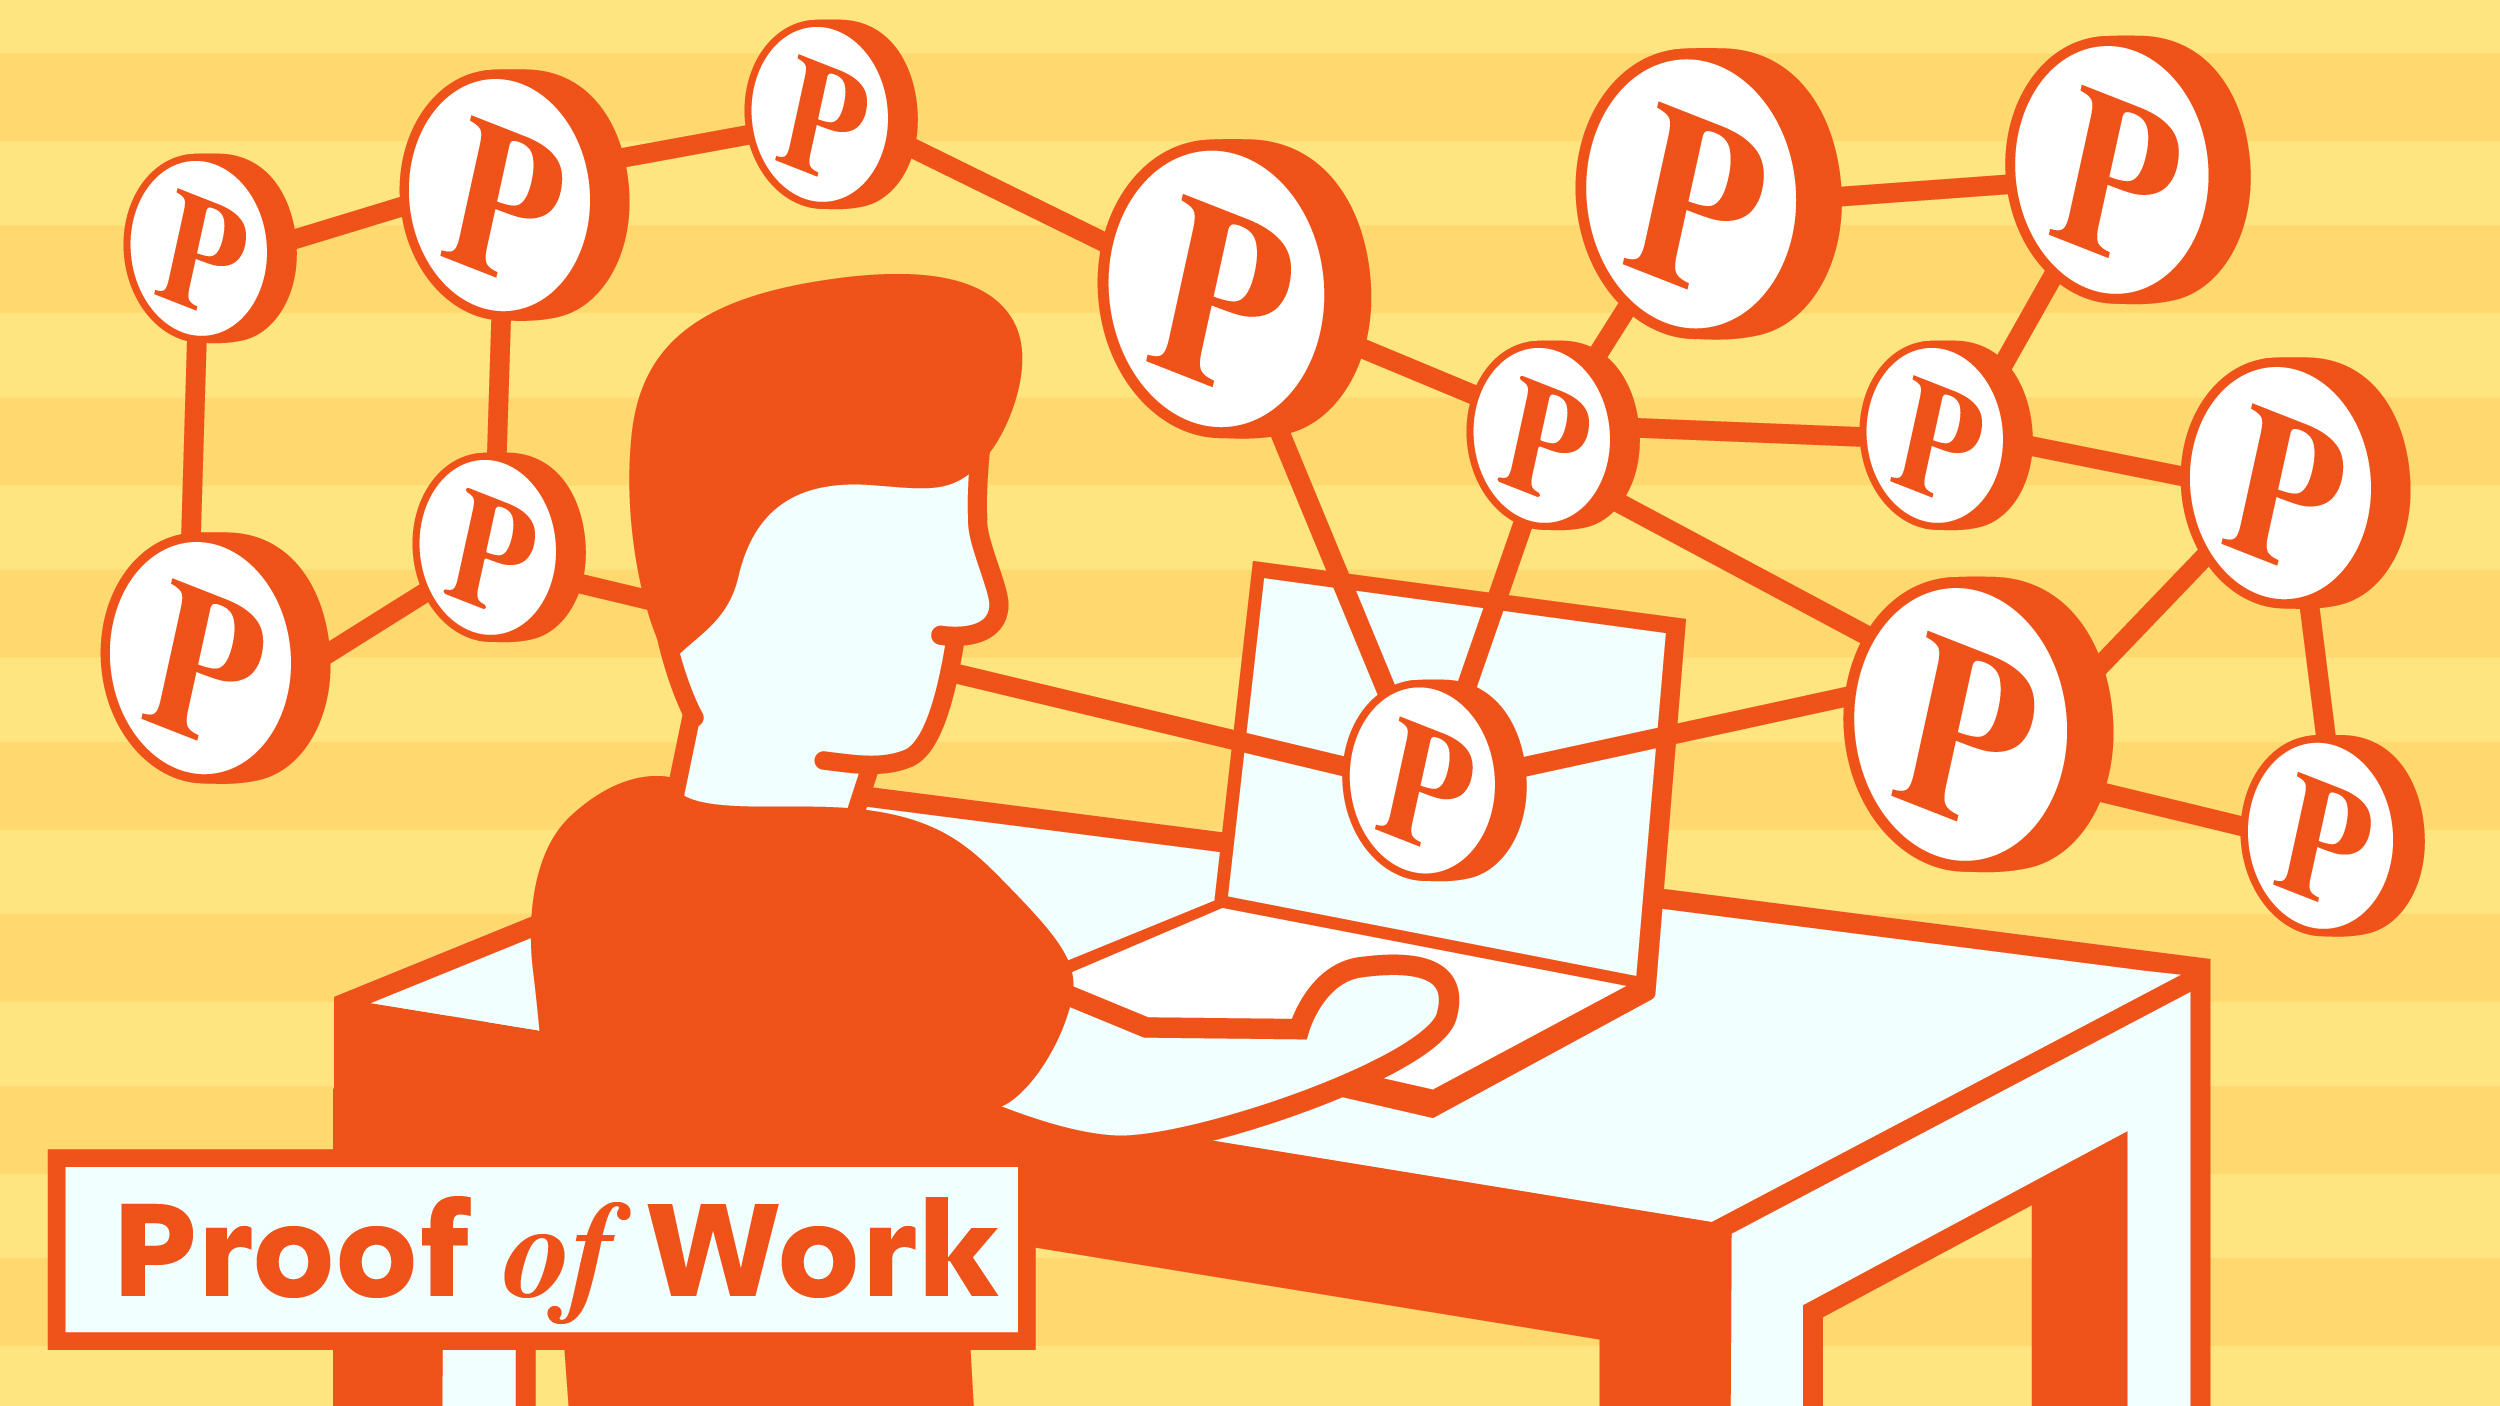 Proof of Work: DeFi needs a little more \